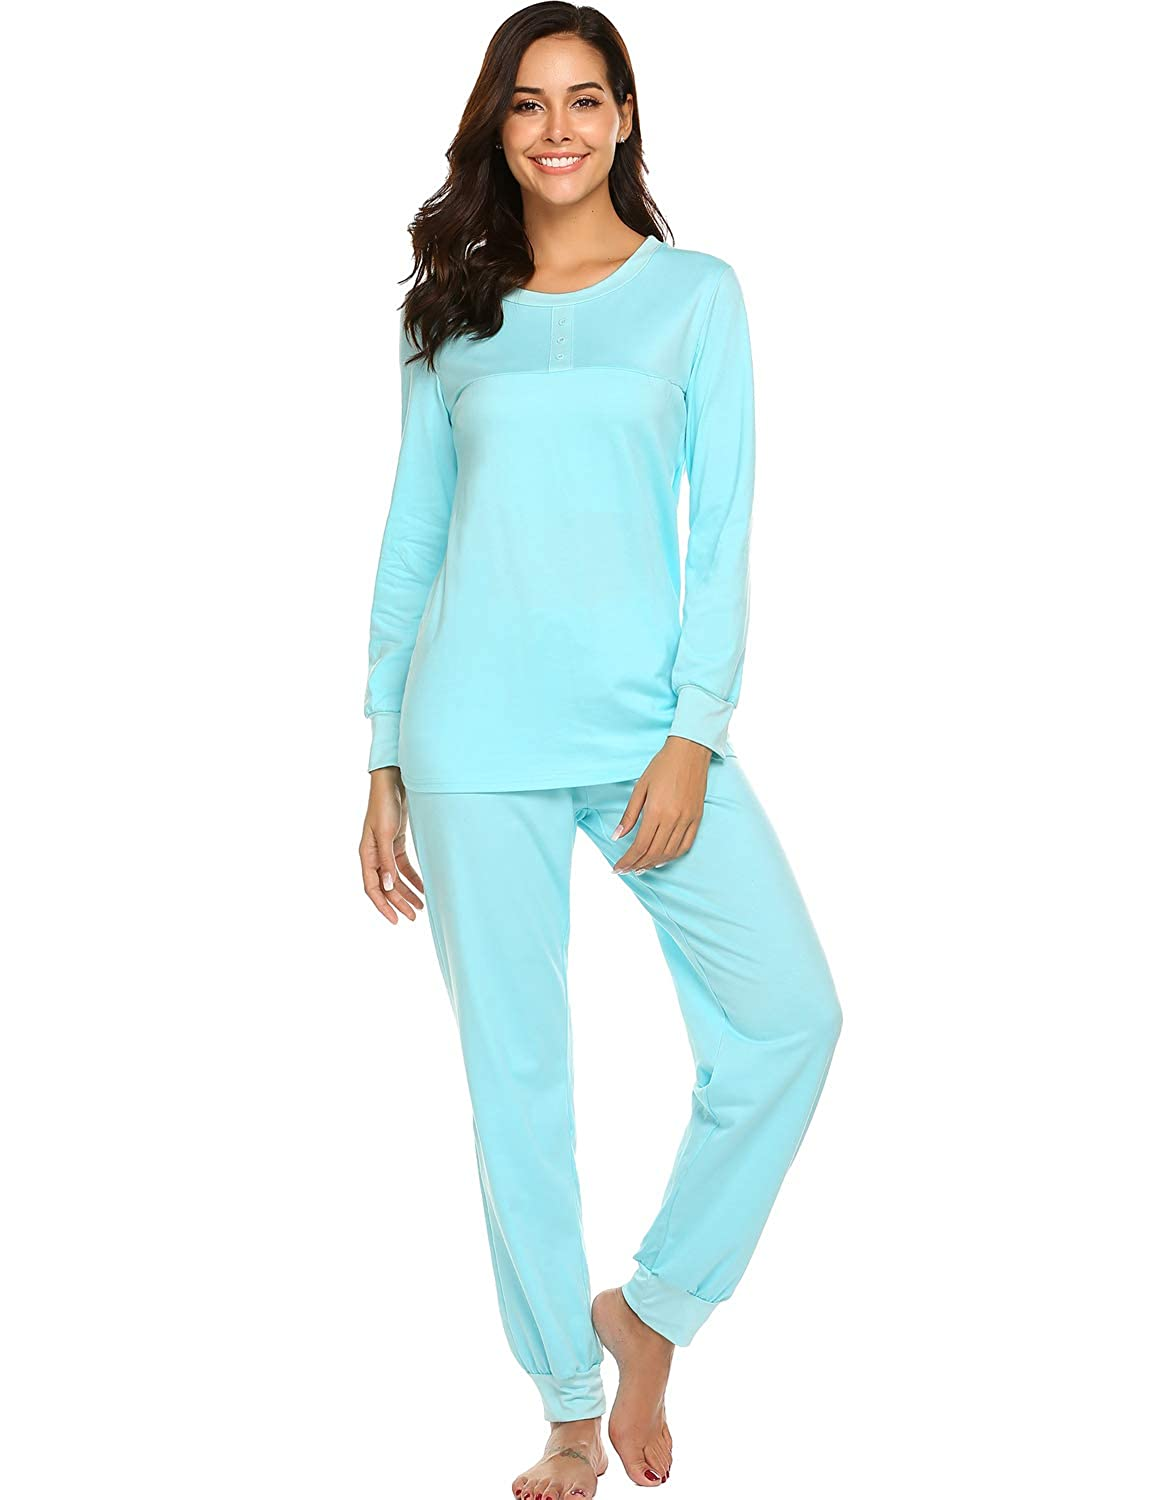 Watch 17 Cute, Comfy Loungewear Items You Won't Want to Take Off UntilSpring video